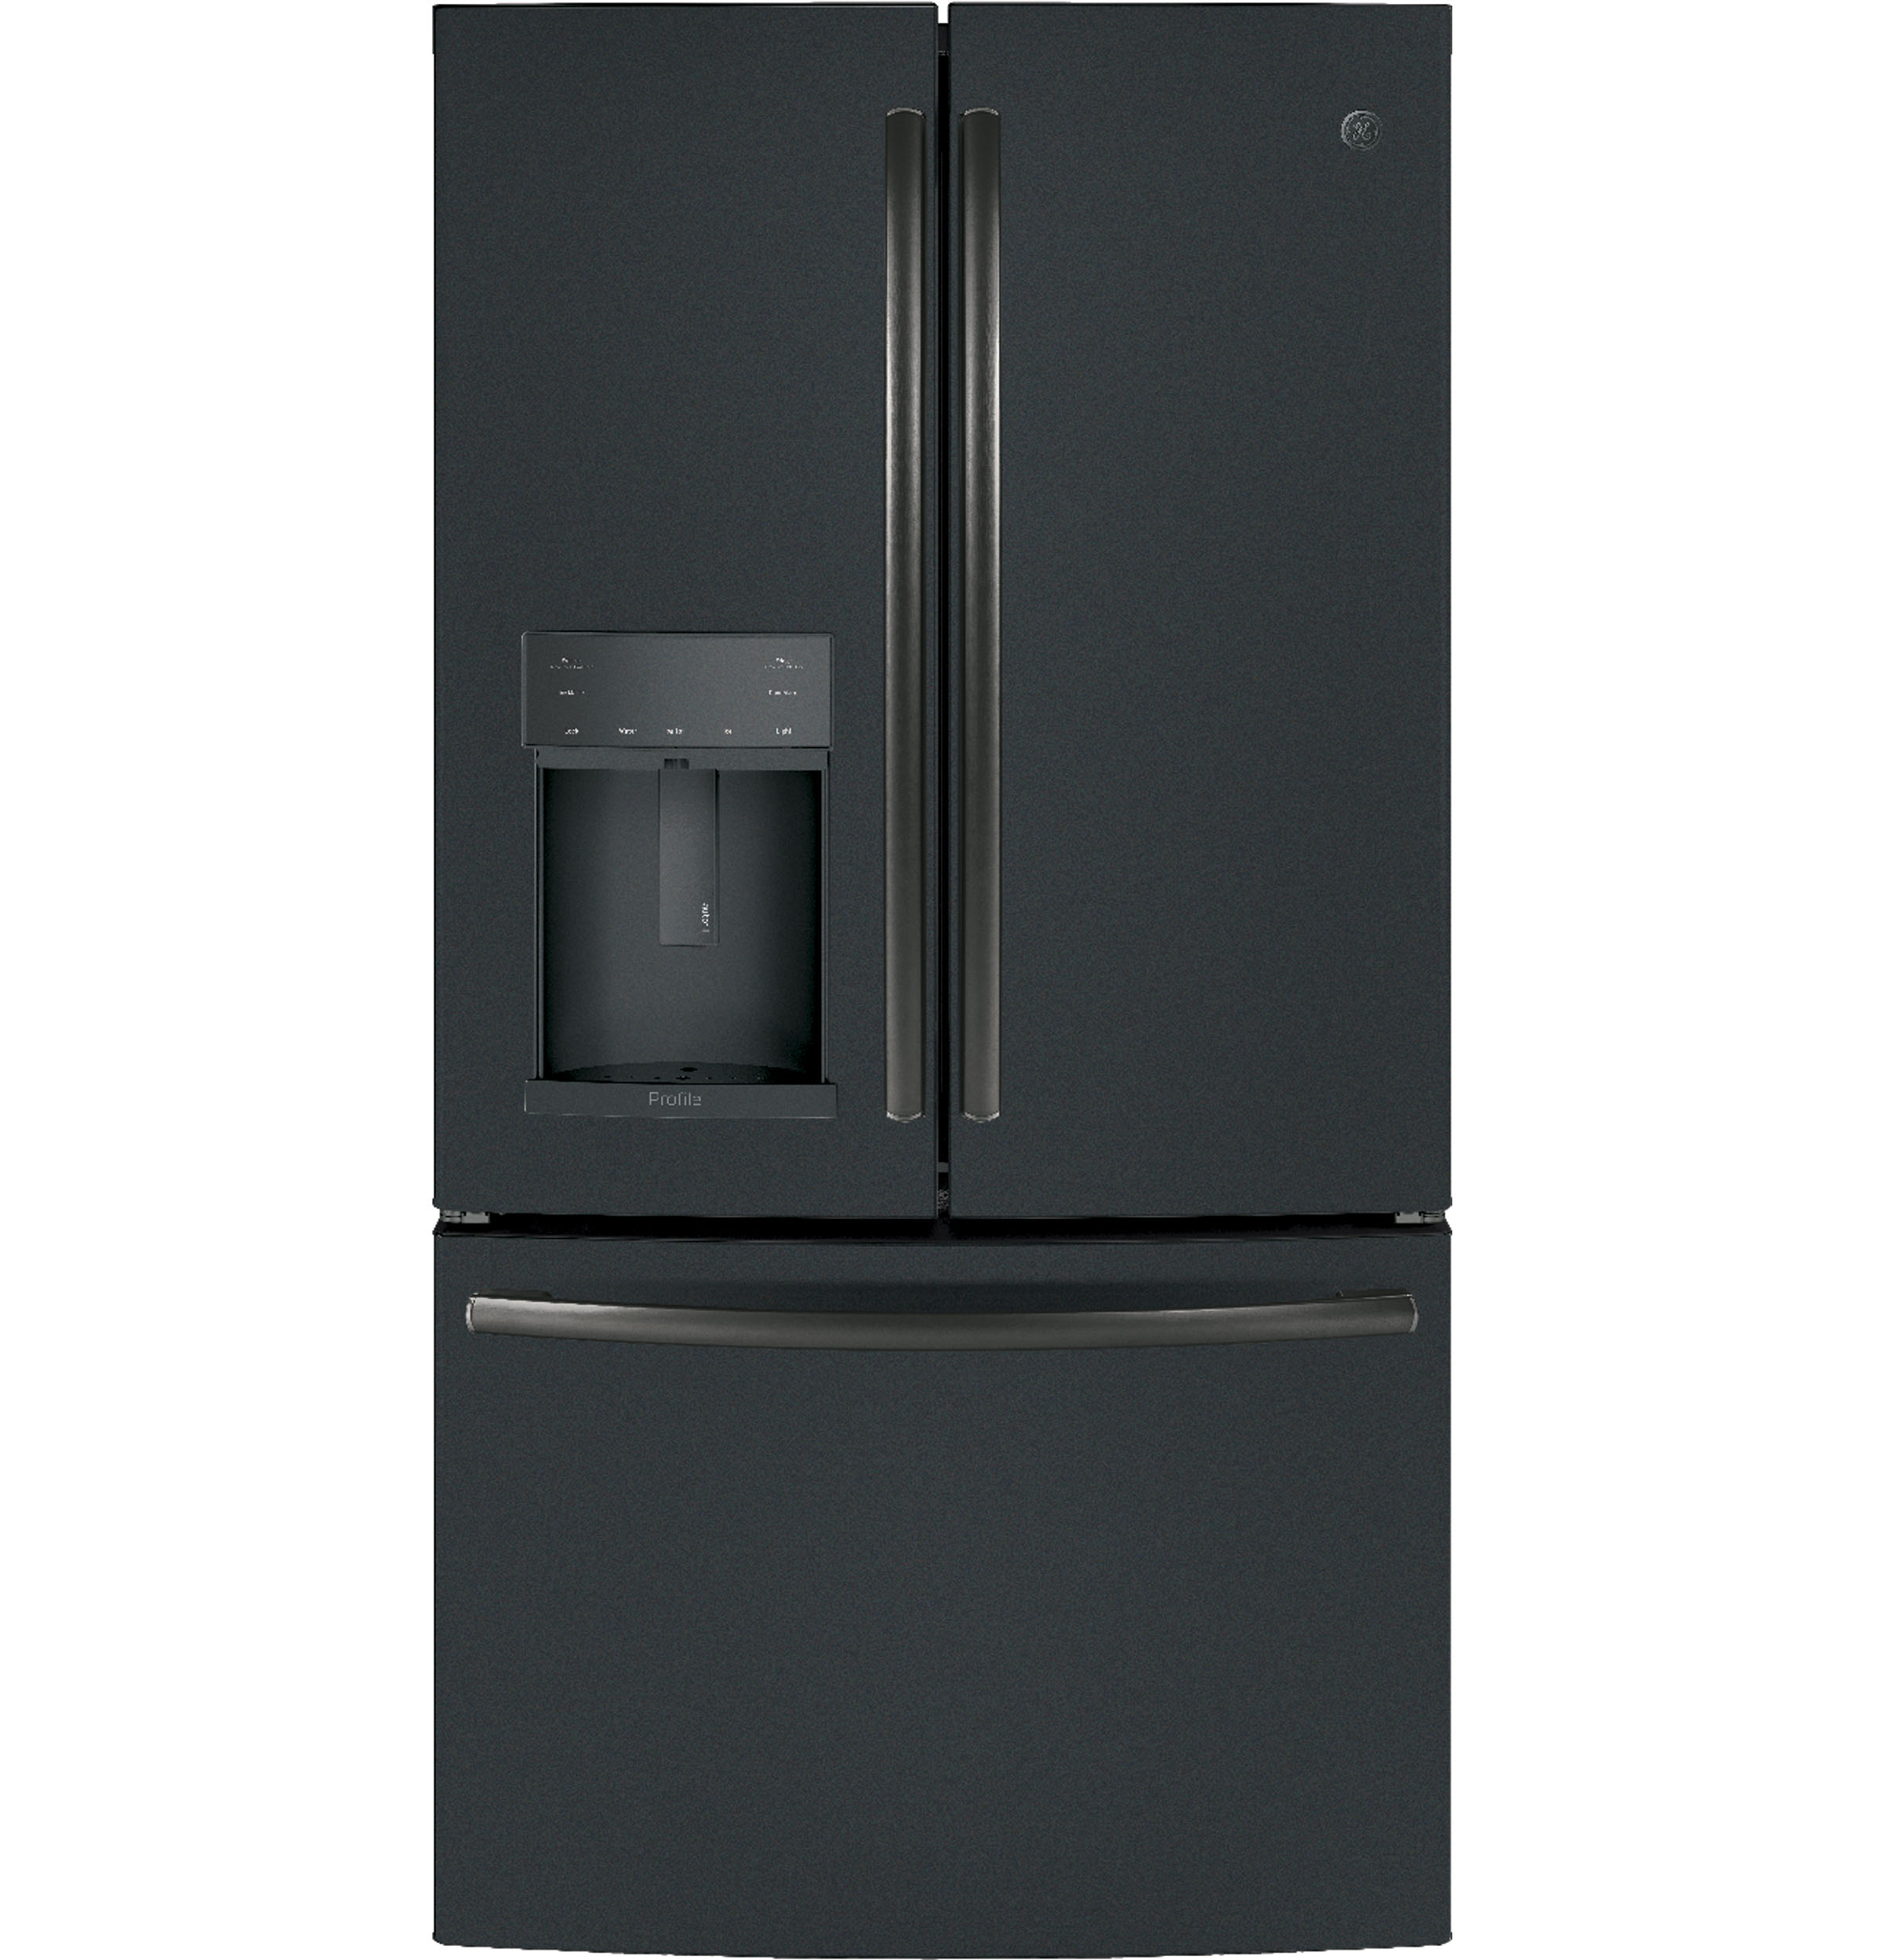 GE Profile GE Profile™ Series ENERGY STAR® 22.2 Cu. Ft. Counter-Depth French-Door Refrigerator.